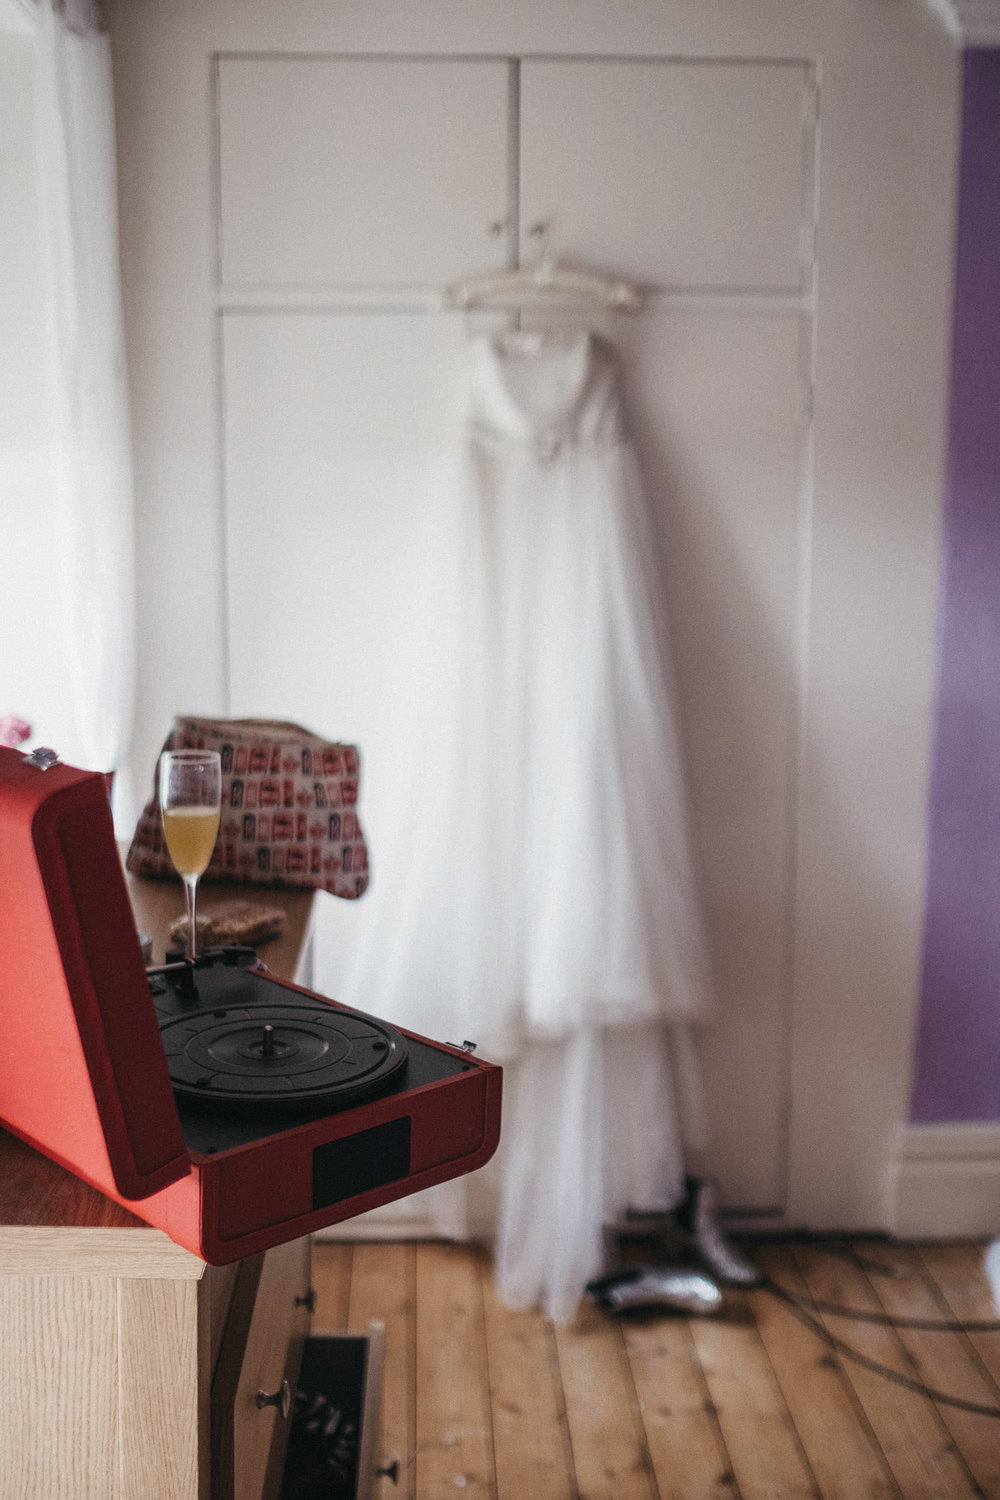 Bucks Fizz on record player with wedding dress in background